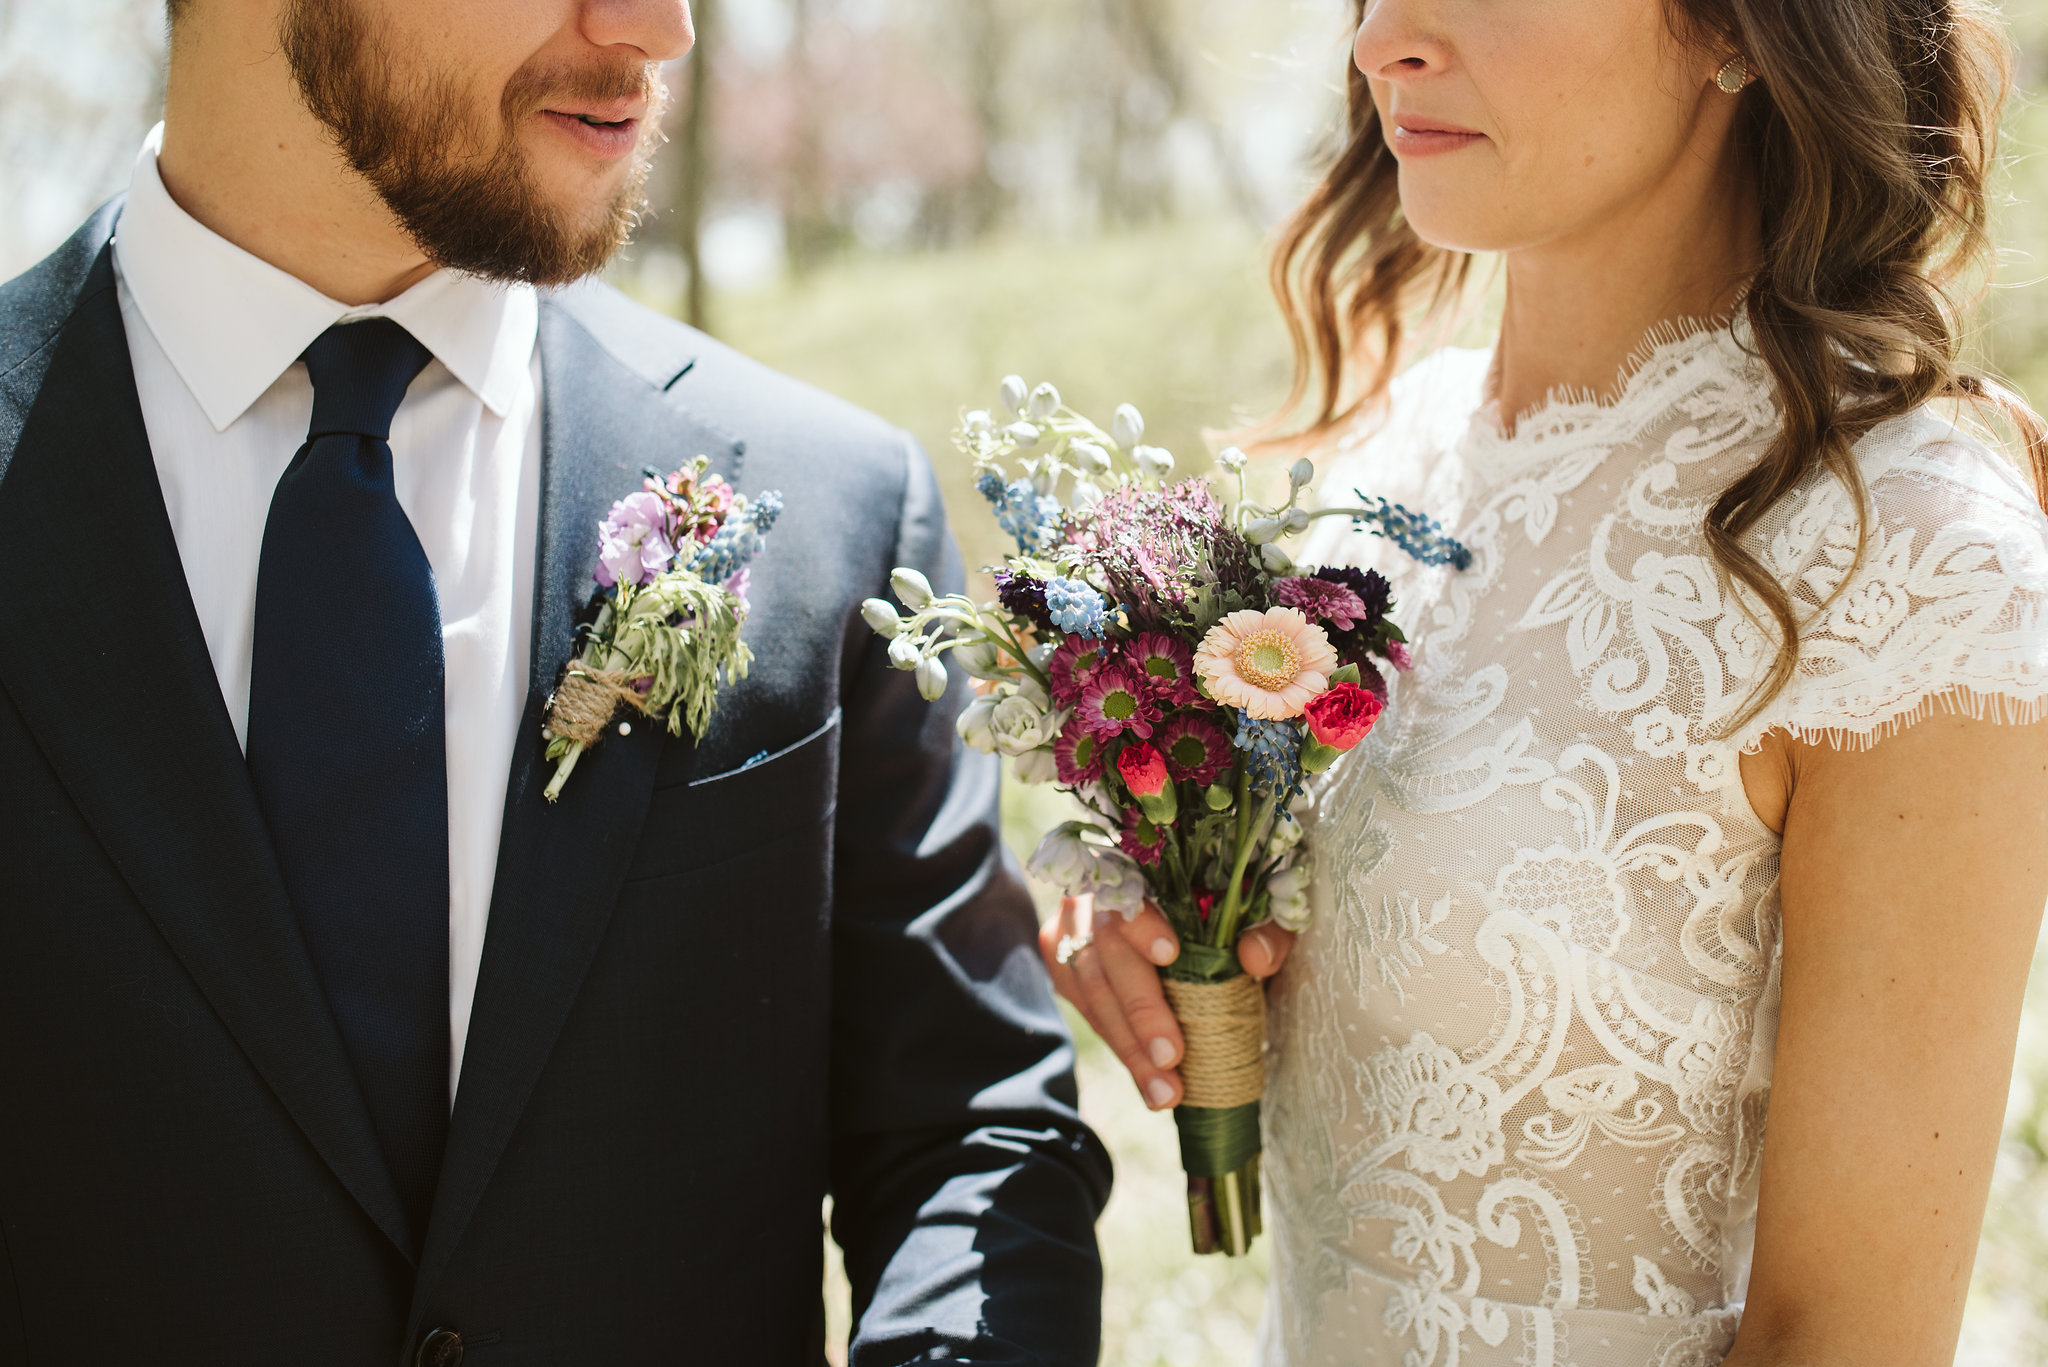 Spring Outdoor Wedding, Park, Baltimore Wedding Photographer, DIY, Classic, Upcycled, Garden Party, Romantic, Bride and Groom Standing Together, Wedding Flowers, Wildflowers, Nordstrom Rack Tie